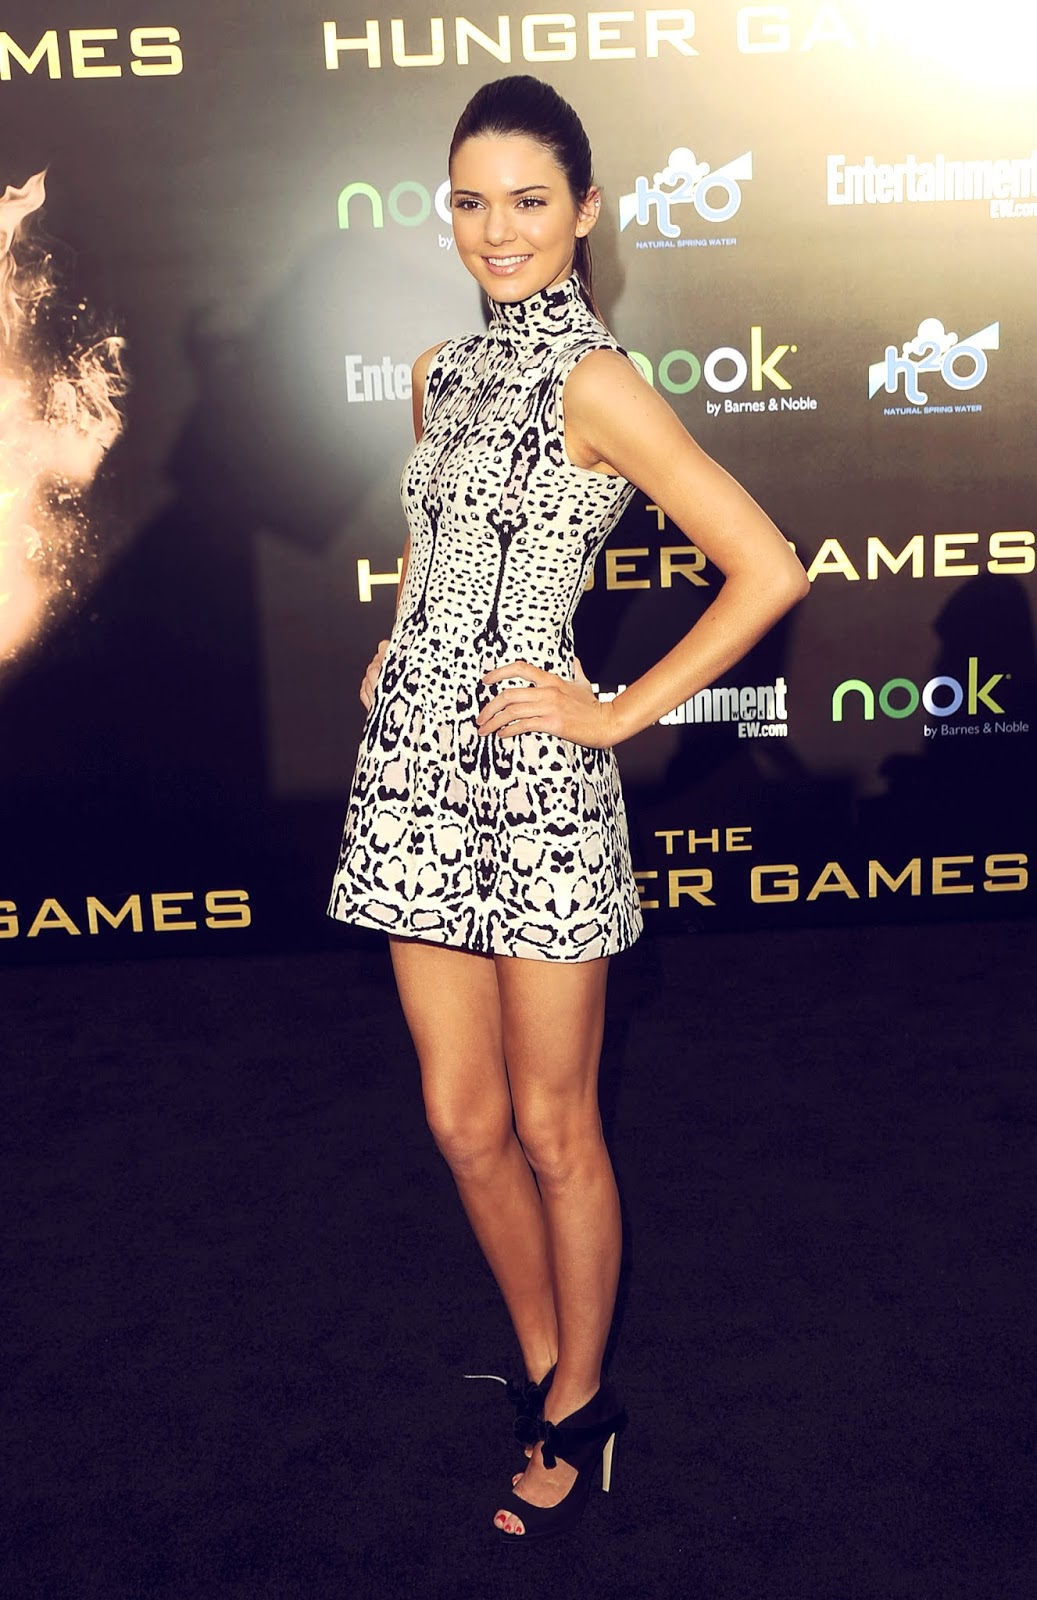 27 - At The Hunger Games Los Angeles Premiere on March 12, 2012